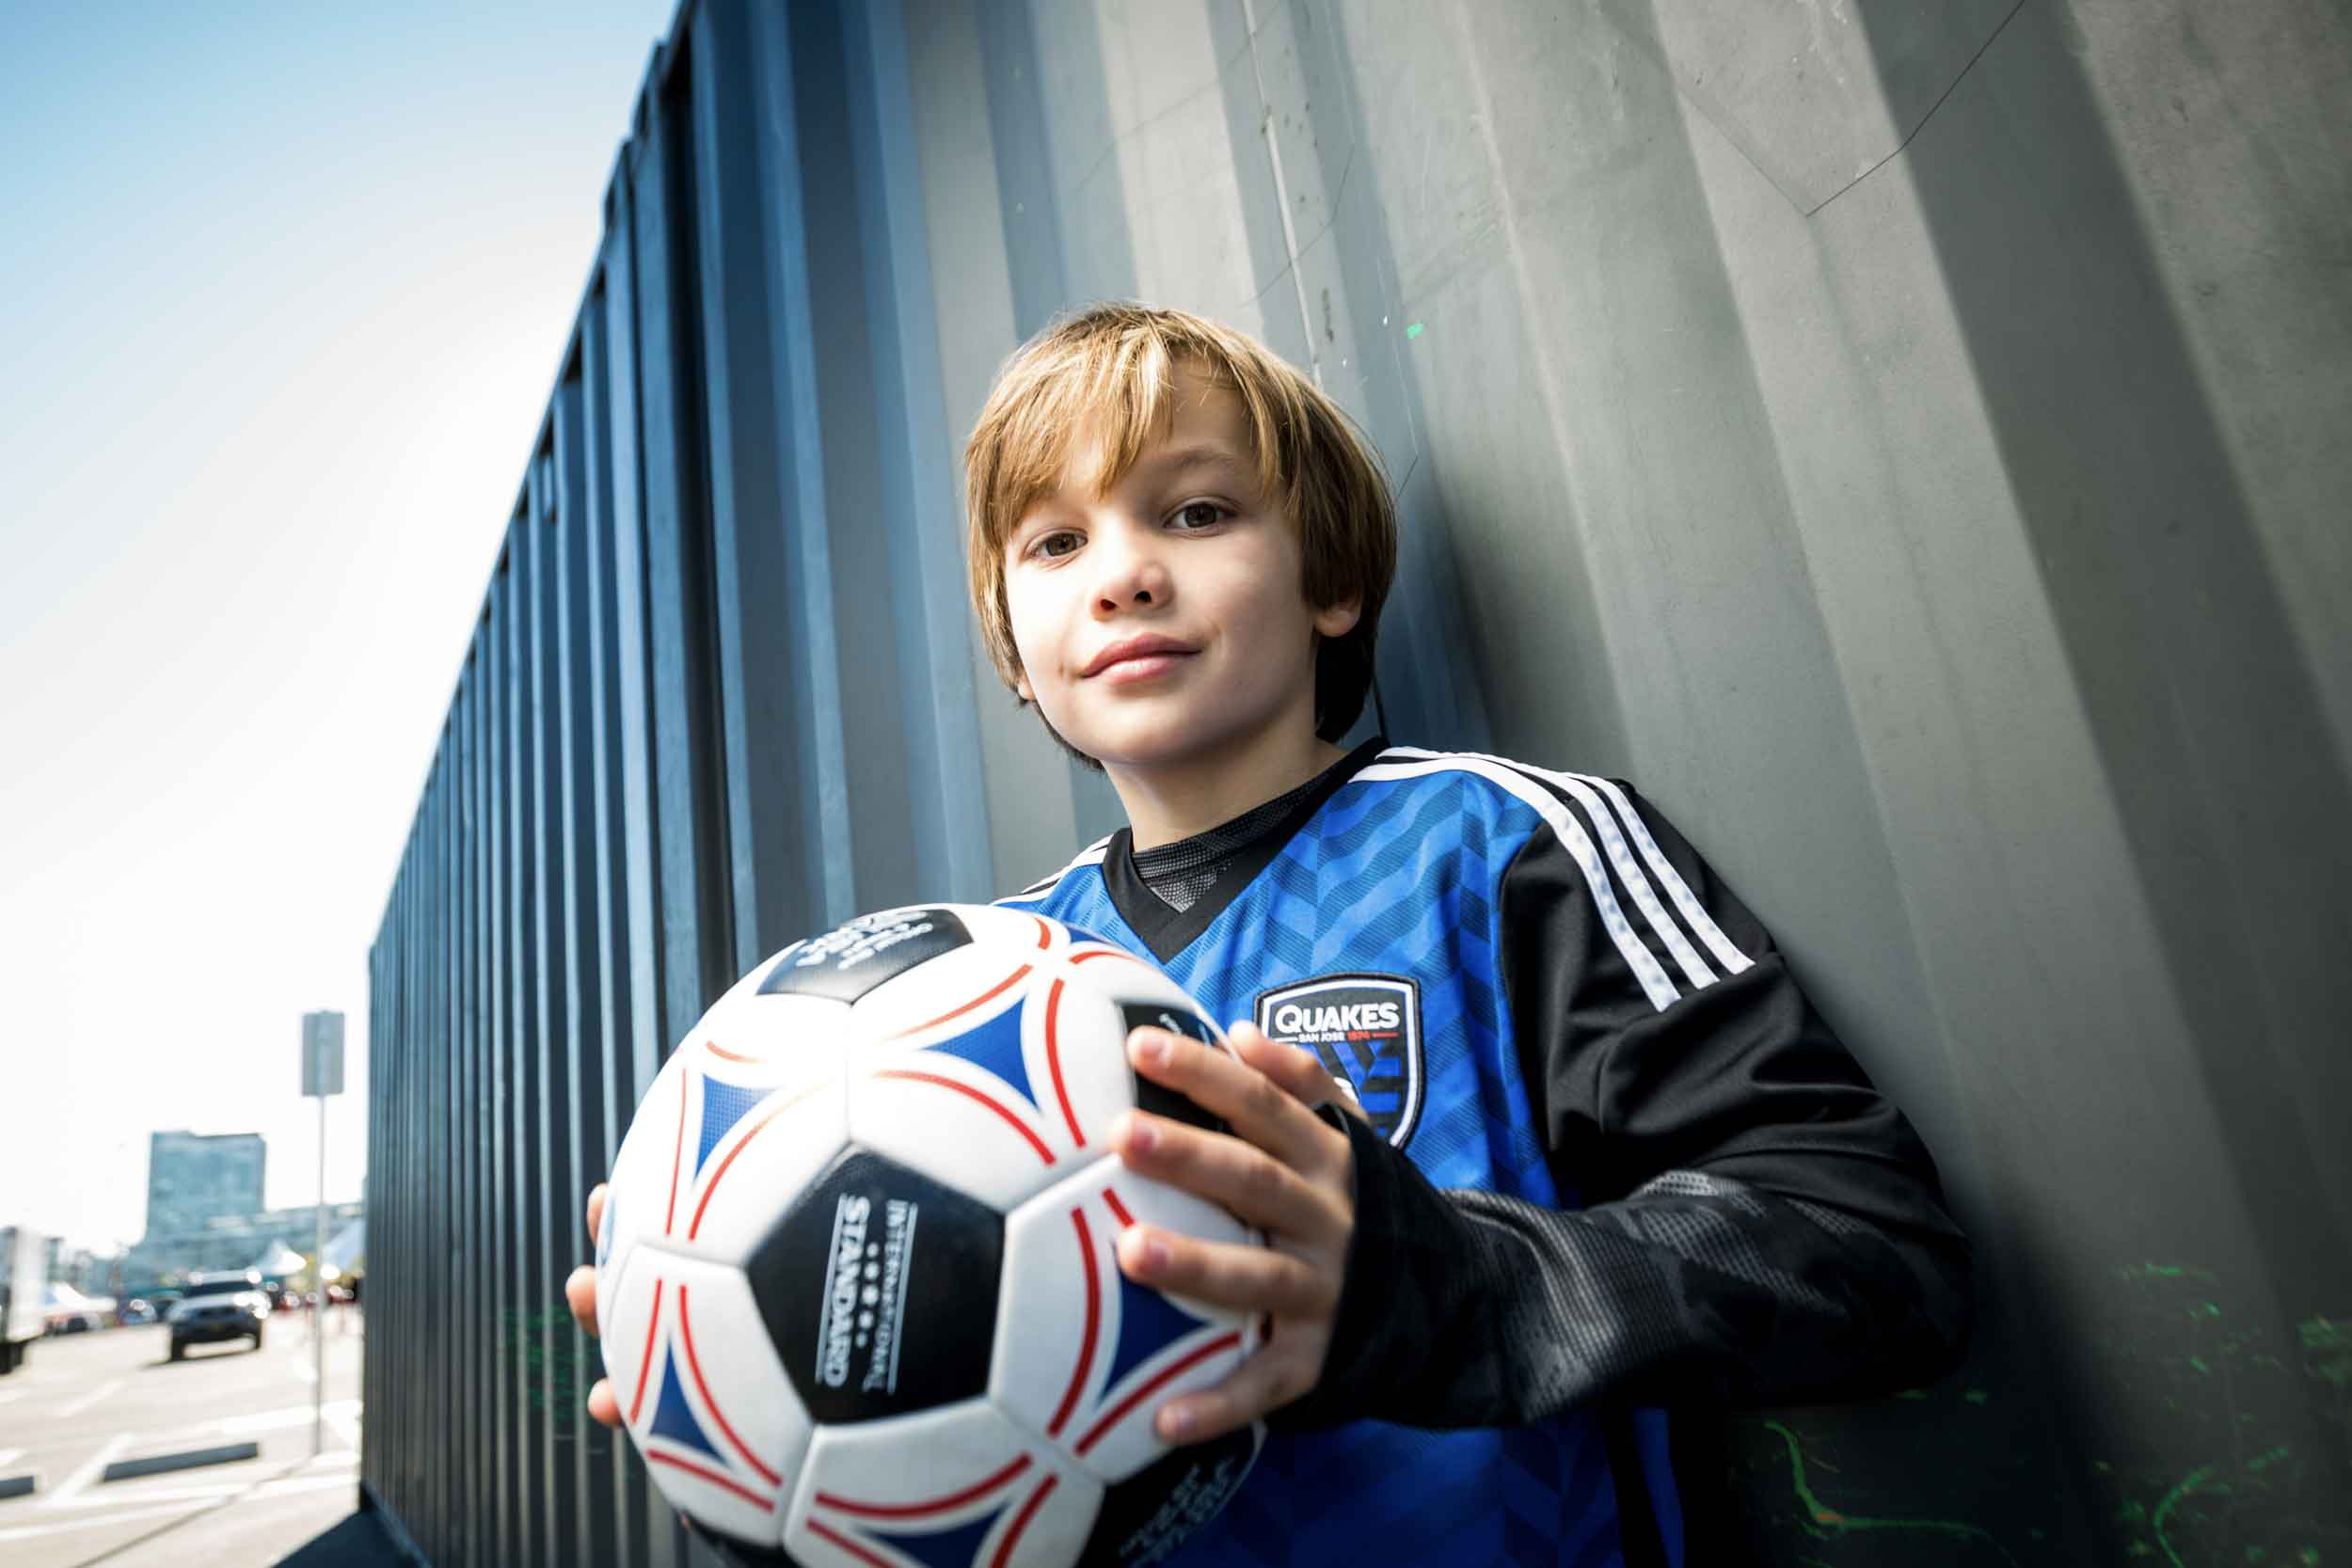 A young boy soccer player holding a ball in front of a shipping container at Urban Soccer Park.